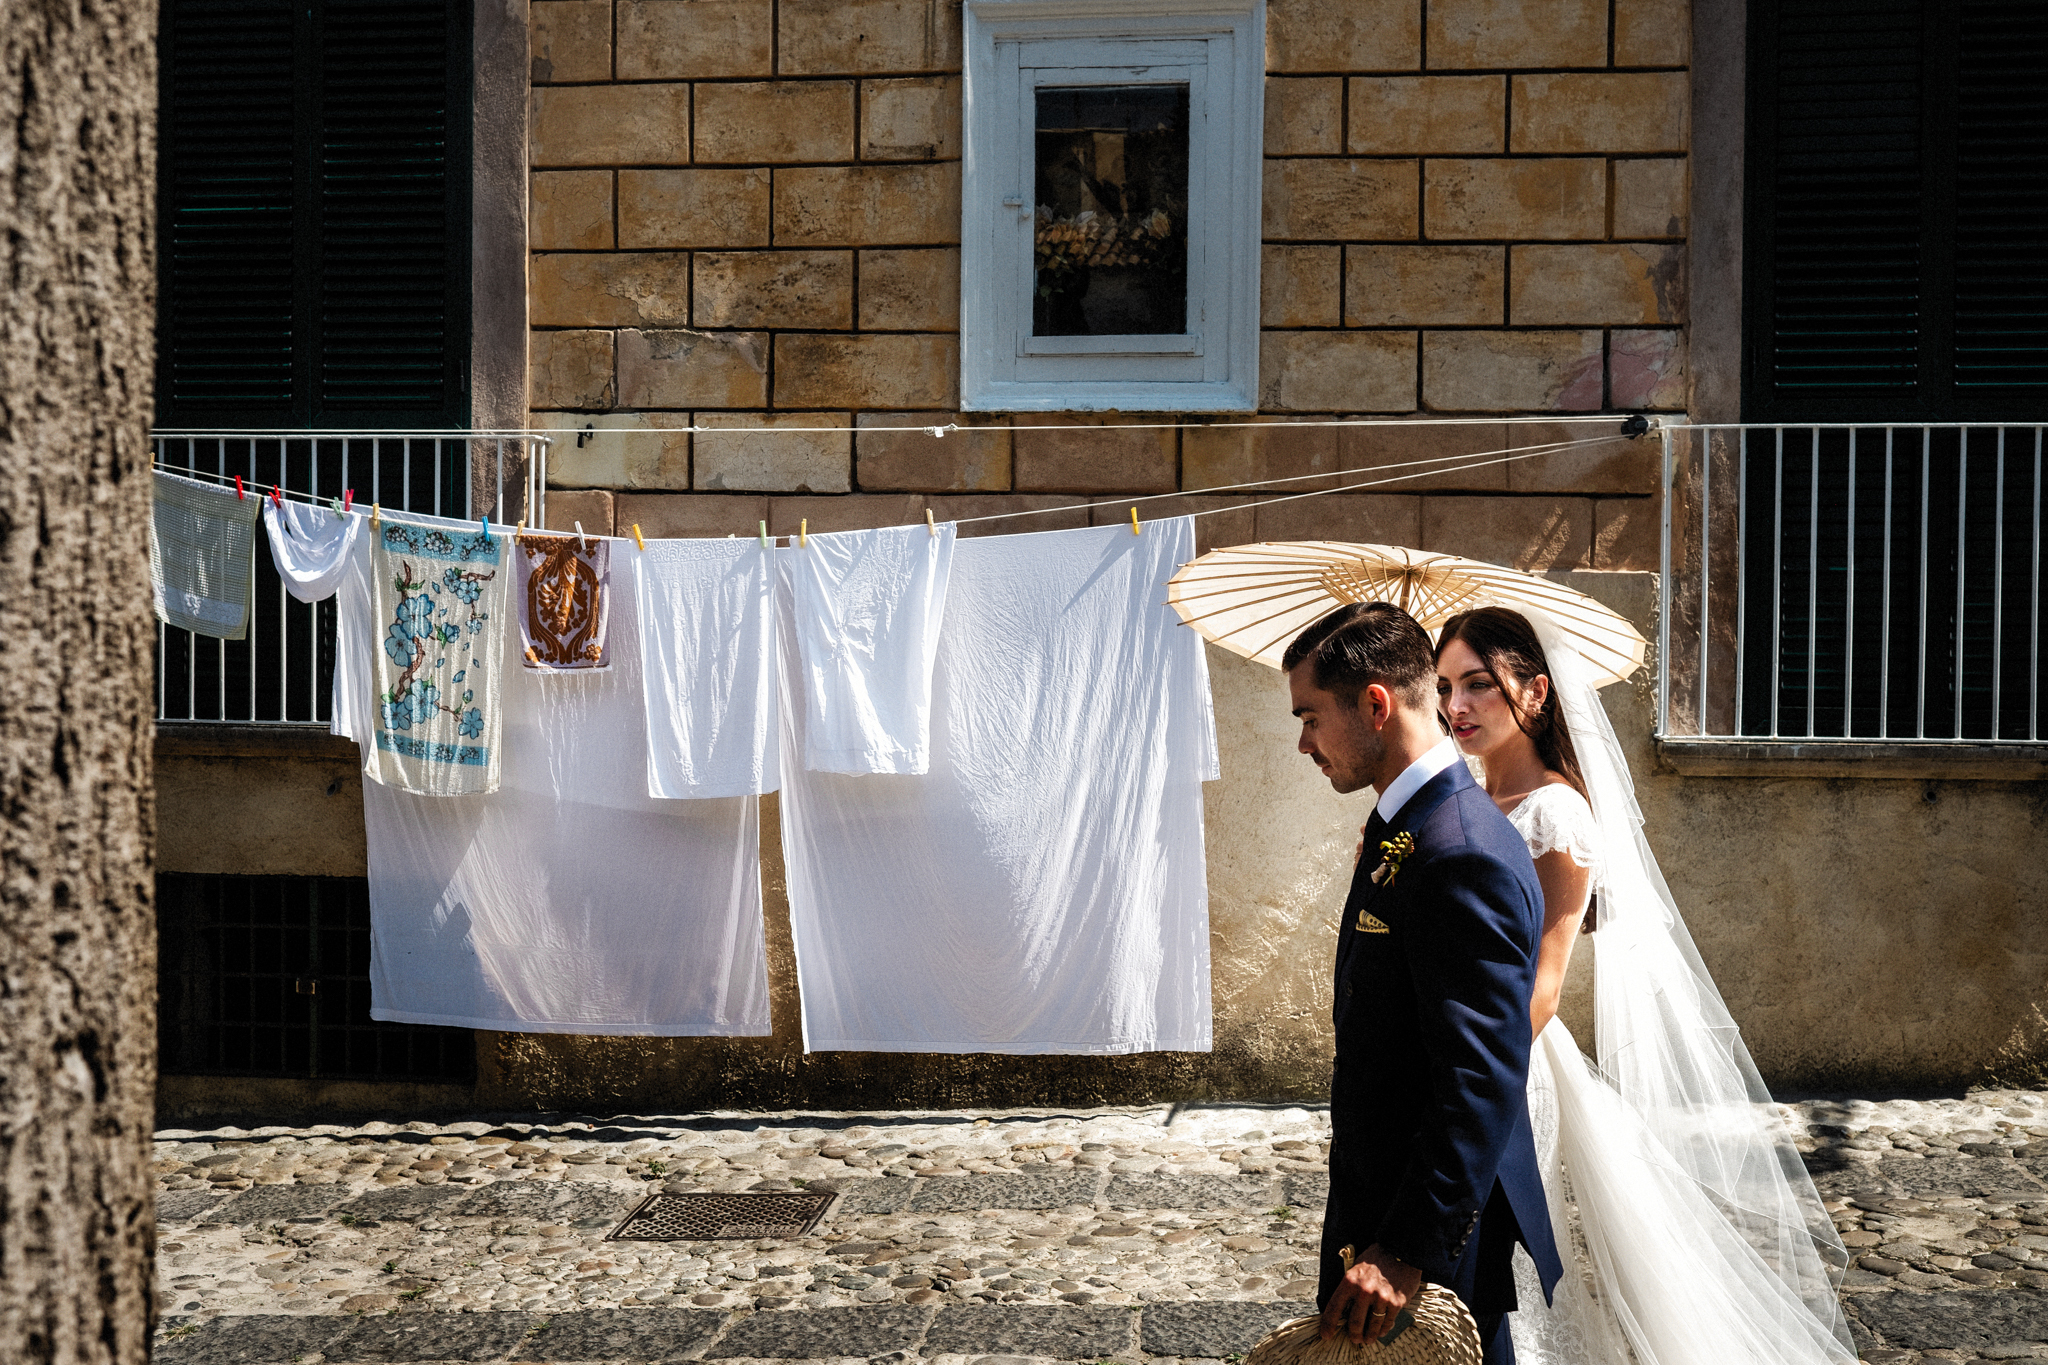 wedding-photography-in-italy-33.jpg